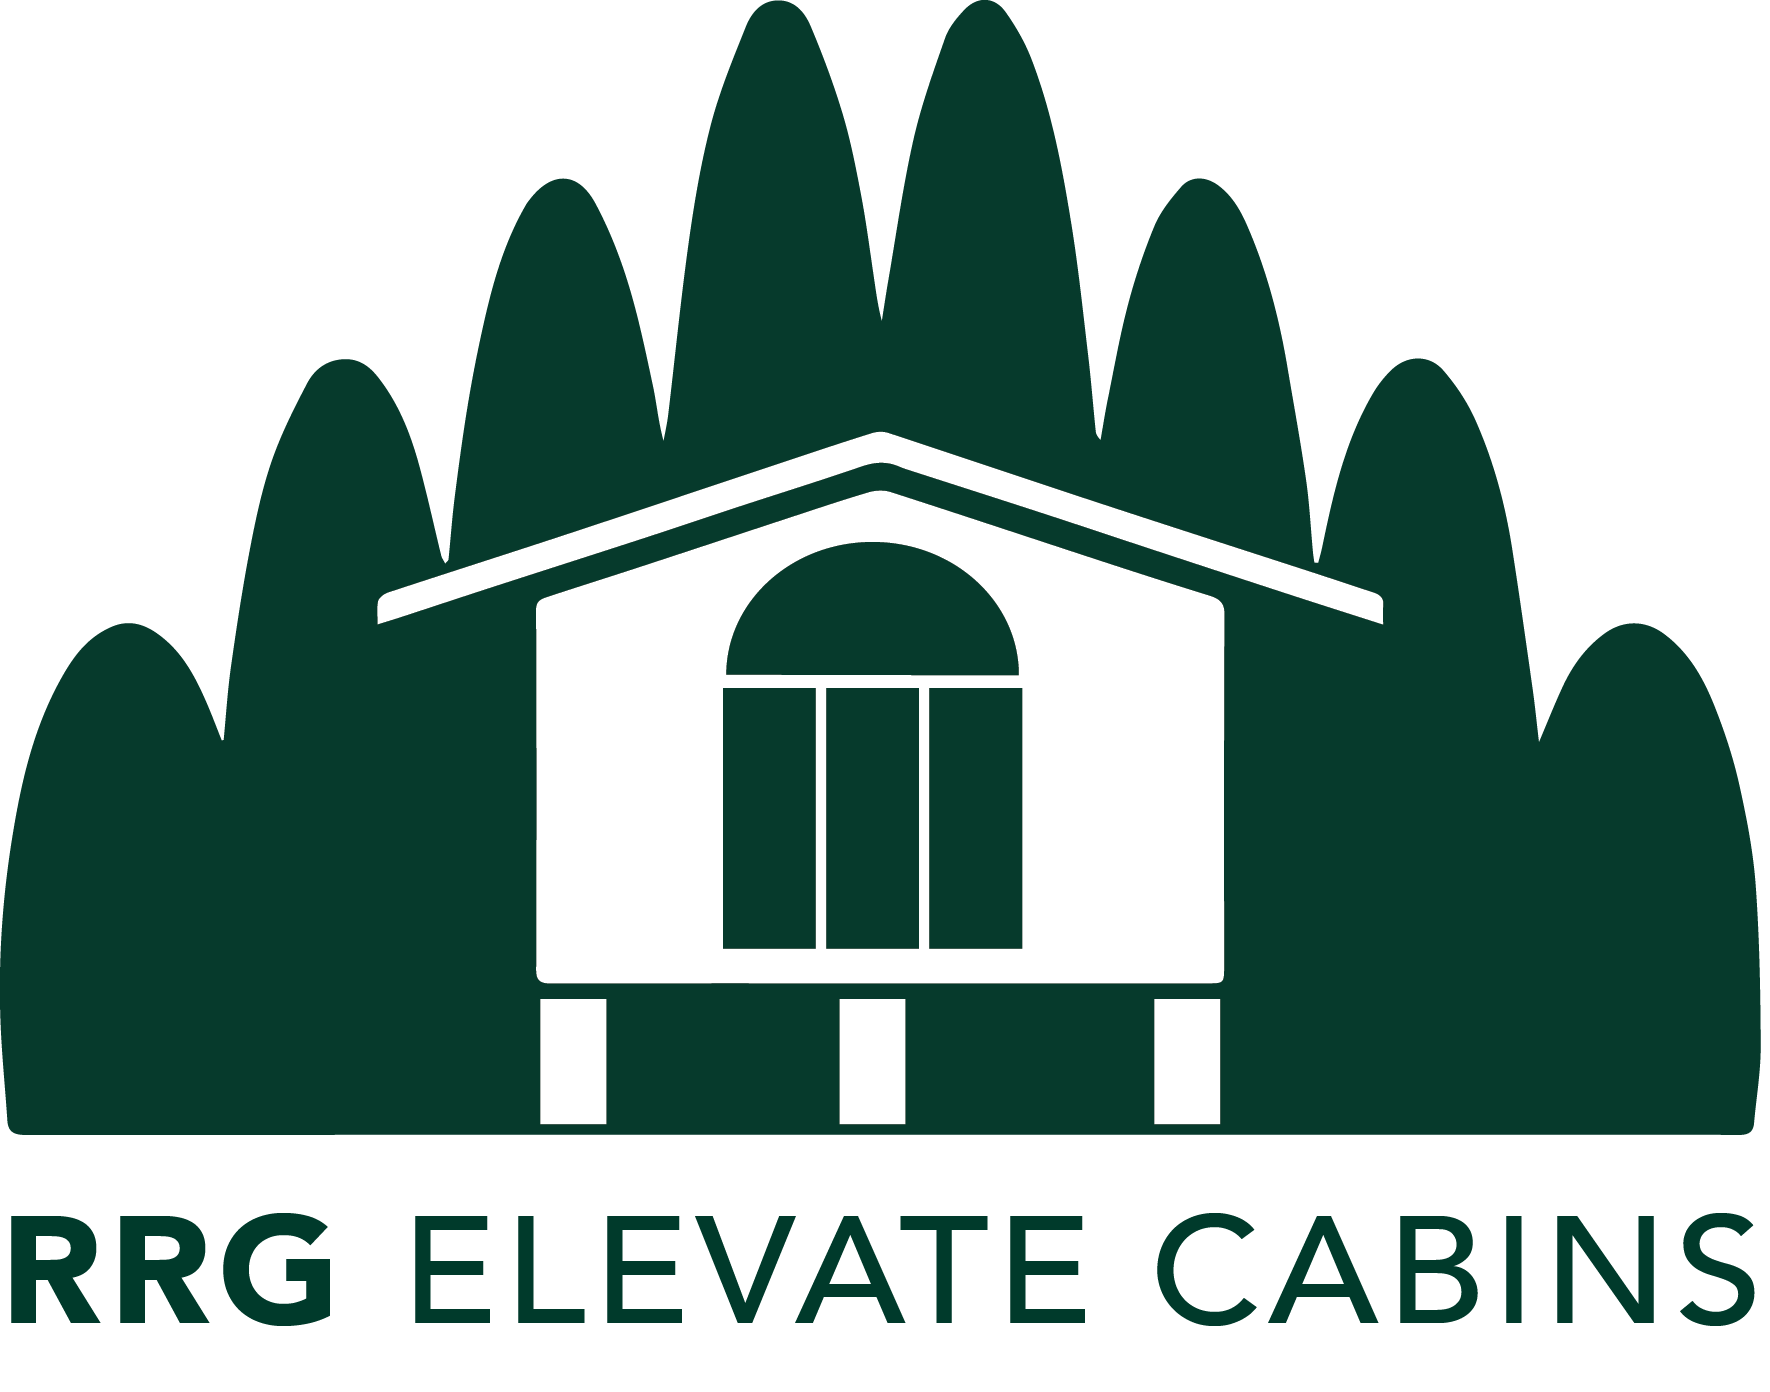 RRG Elevate Cabins